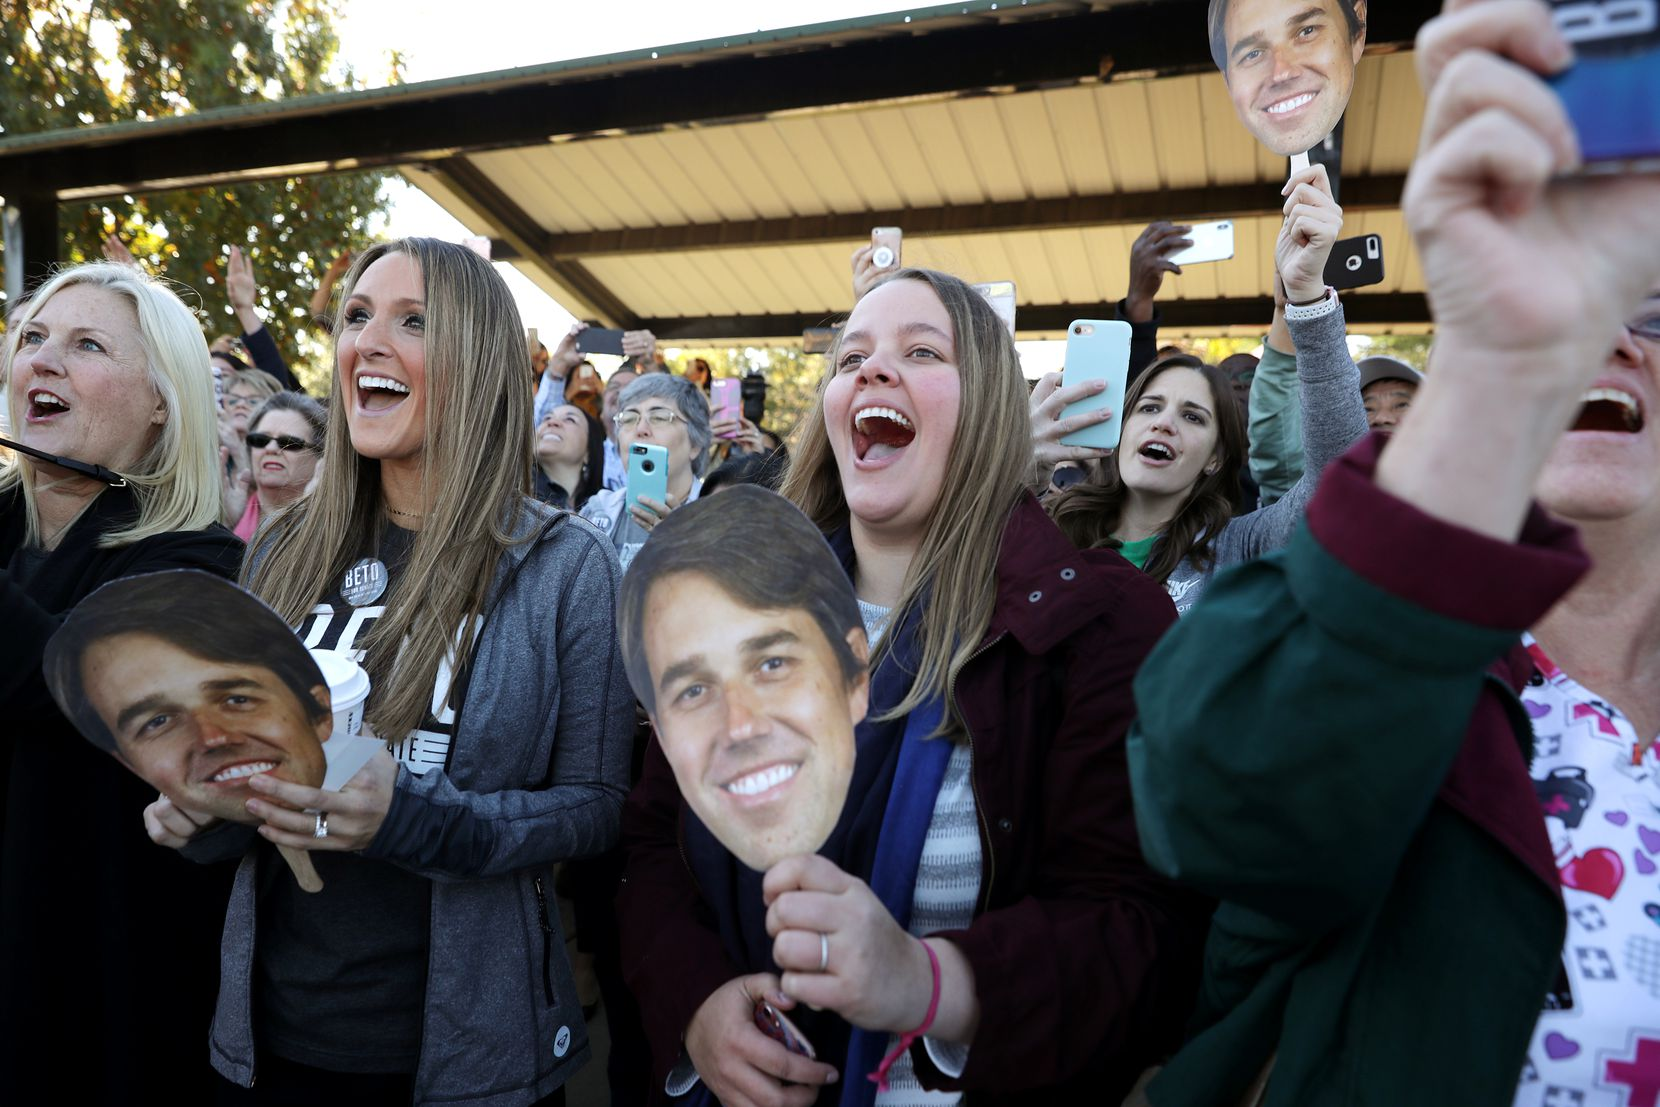 Supporters U.S. Senate candidate Beto ORourke's arrival at a campaign rally on Nov. 2 at Wayne Frady Park in Lewisville.